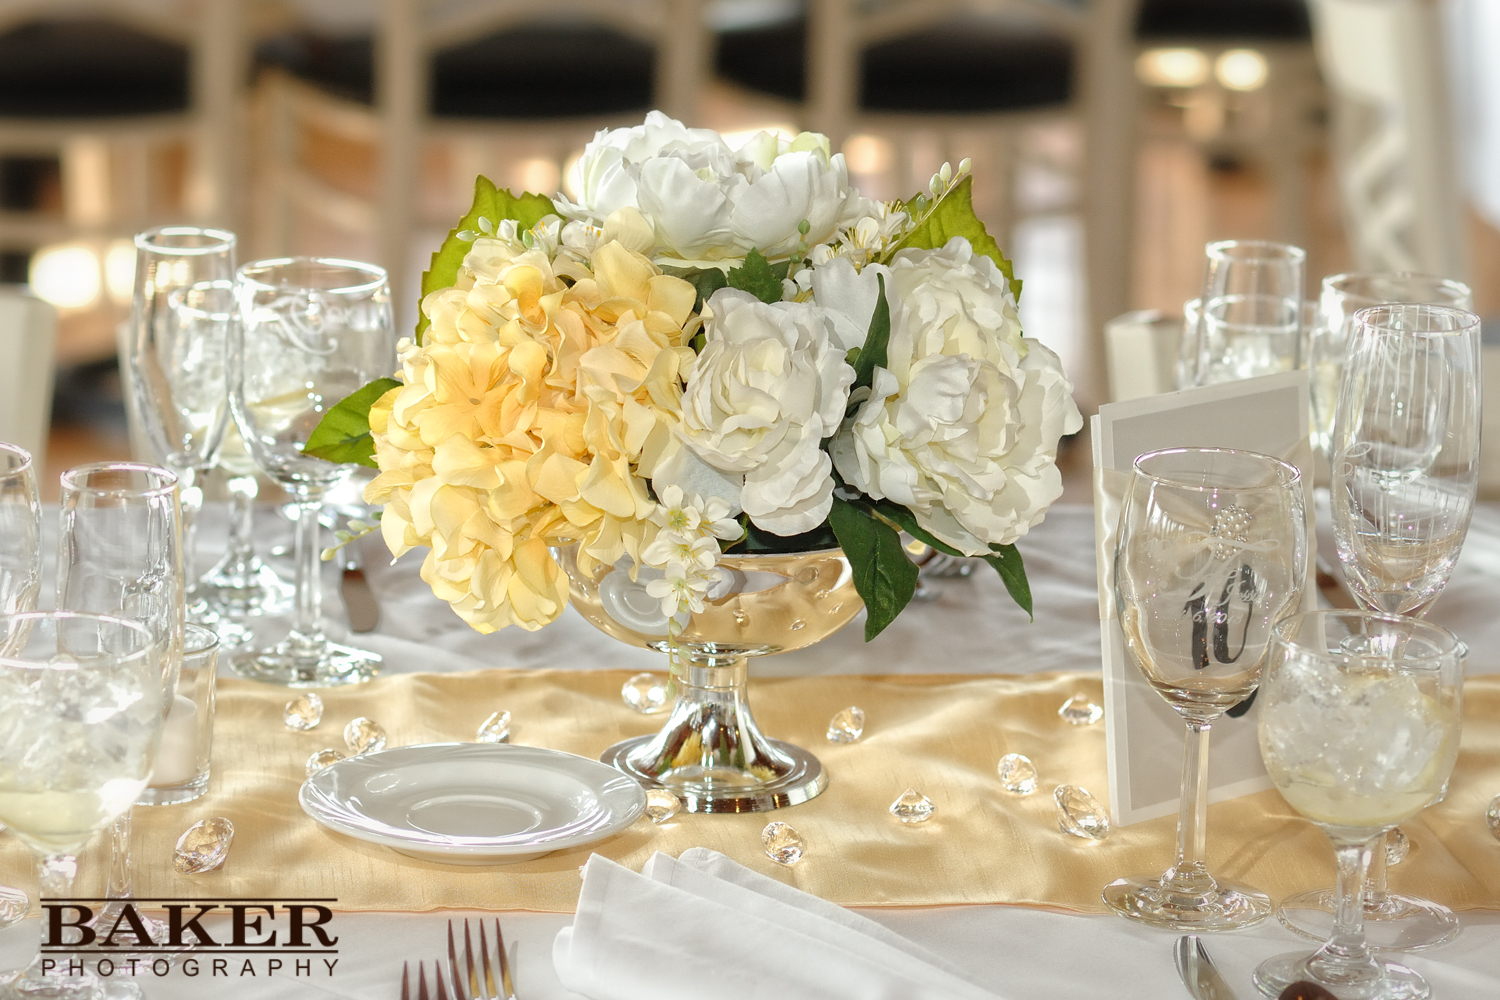 Wedding reception table setting with centerpiece – Photo credit Baker Photography